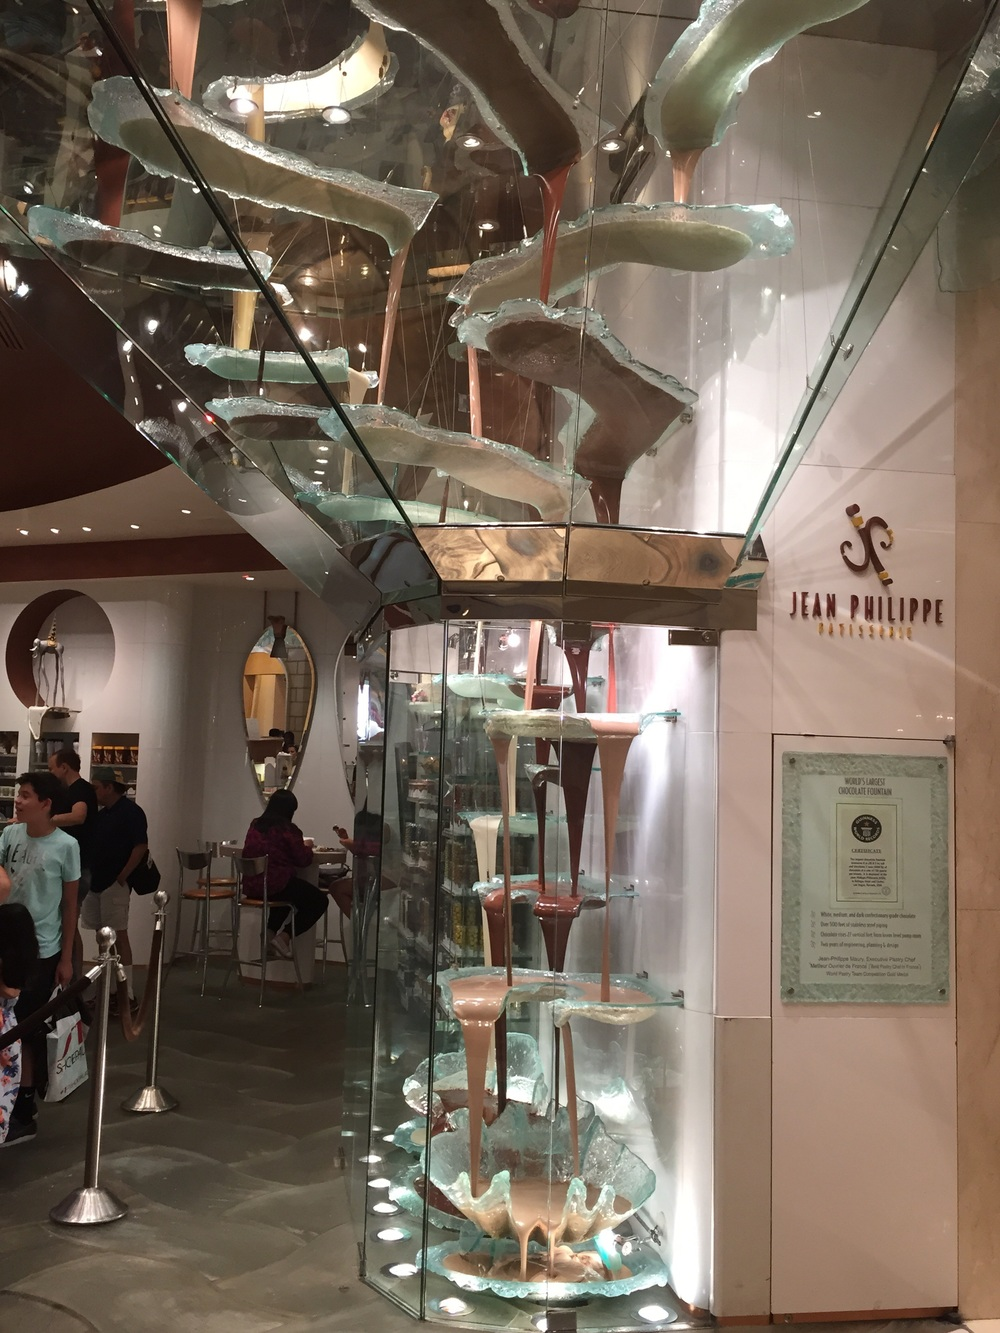 World's largest chocolate fountain- The Bellagio